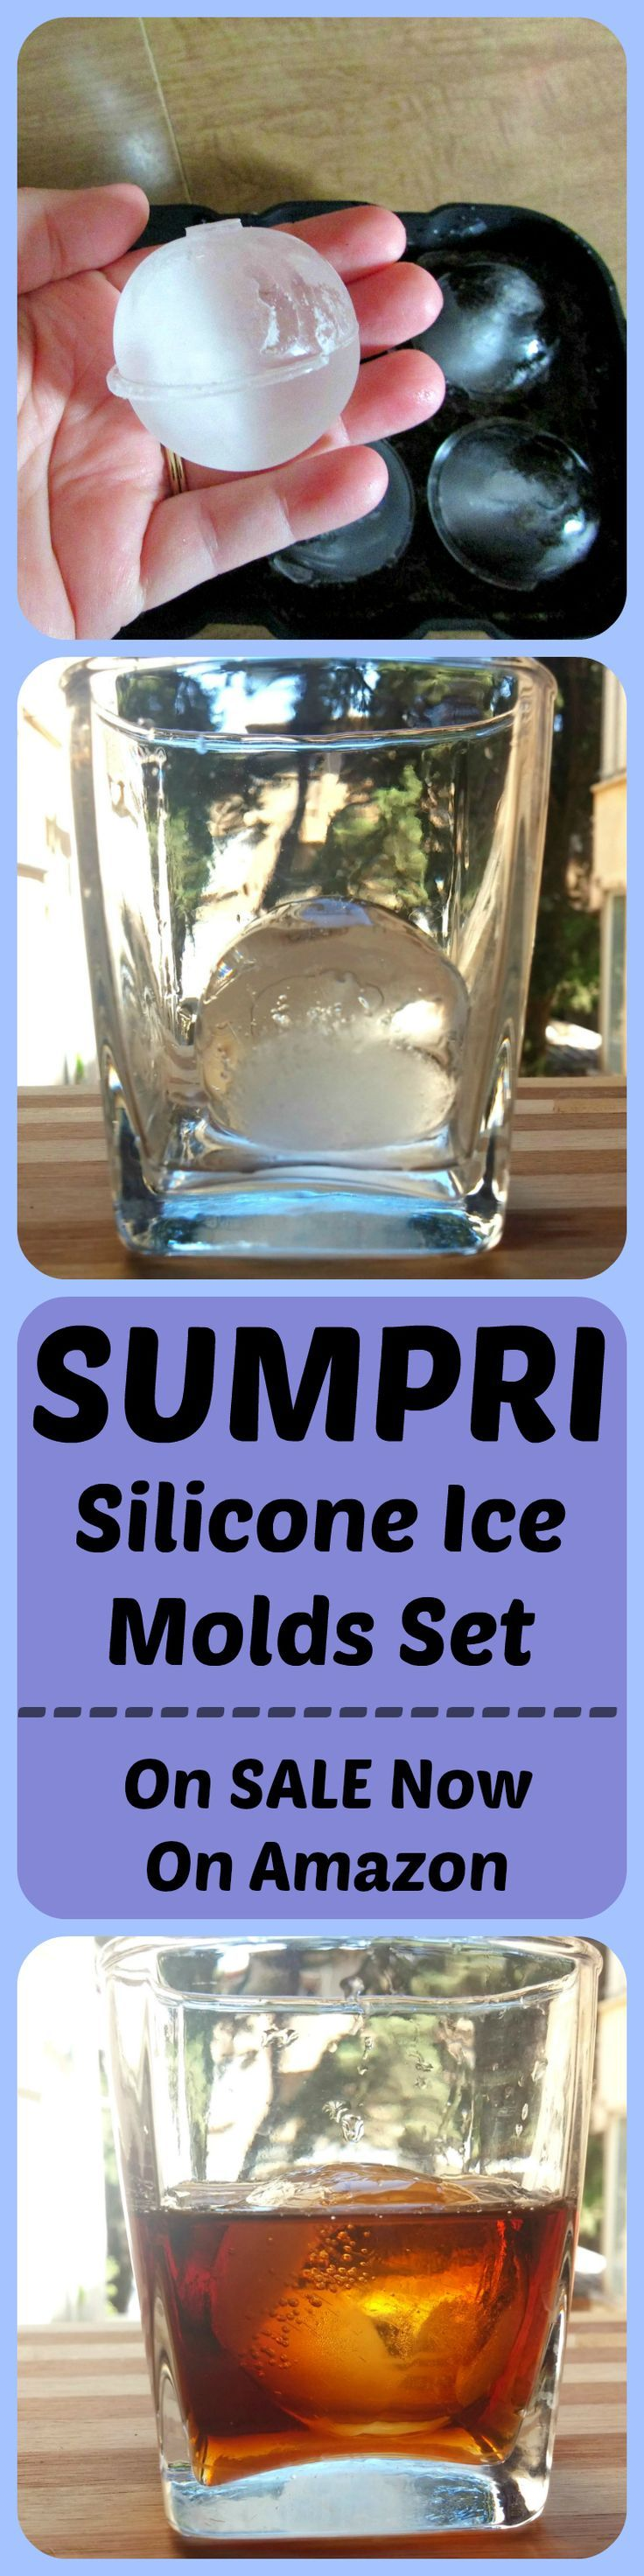 best ideas about cv maker online resume maker make beautiful looking drinks using sumpri silicone ice molds set the only two color